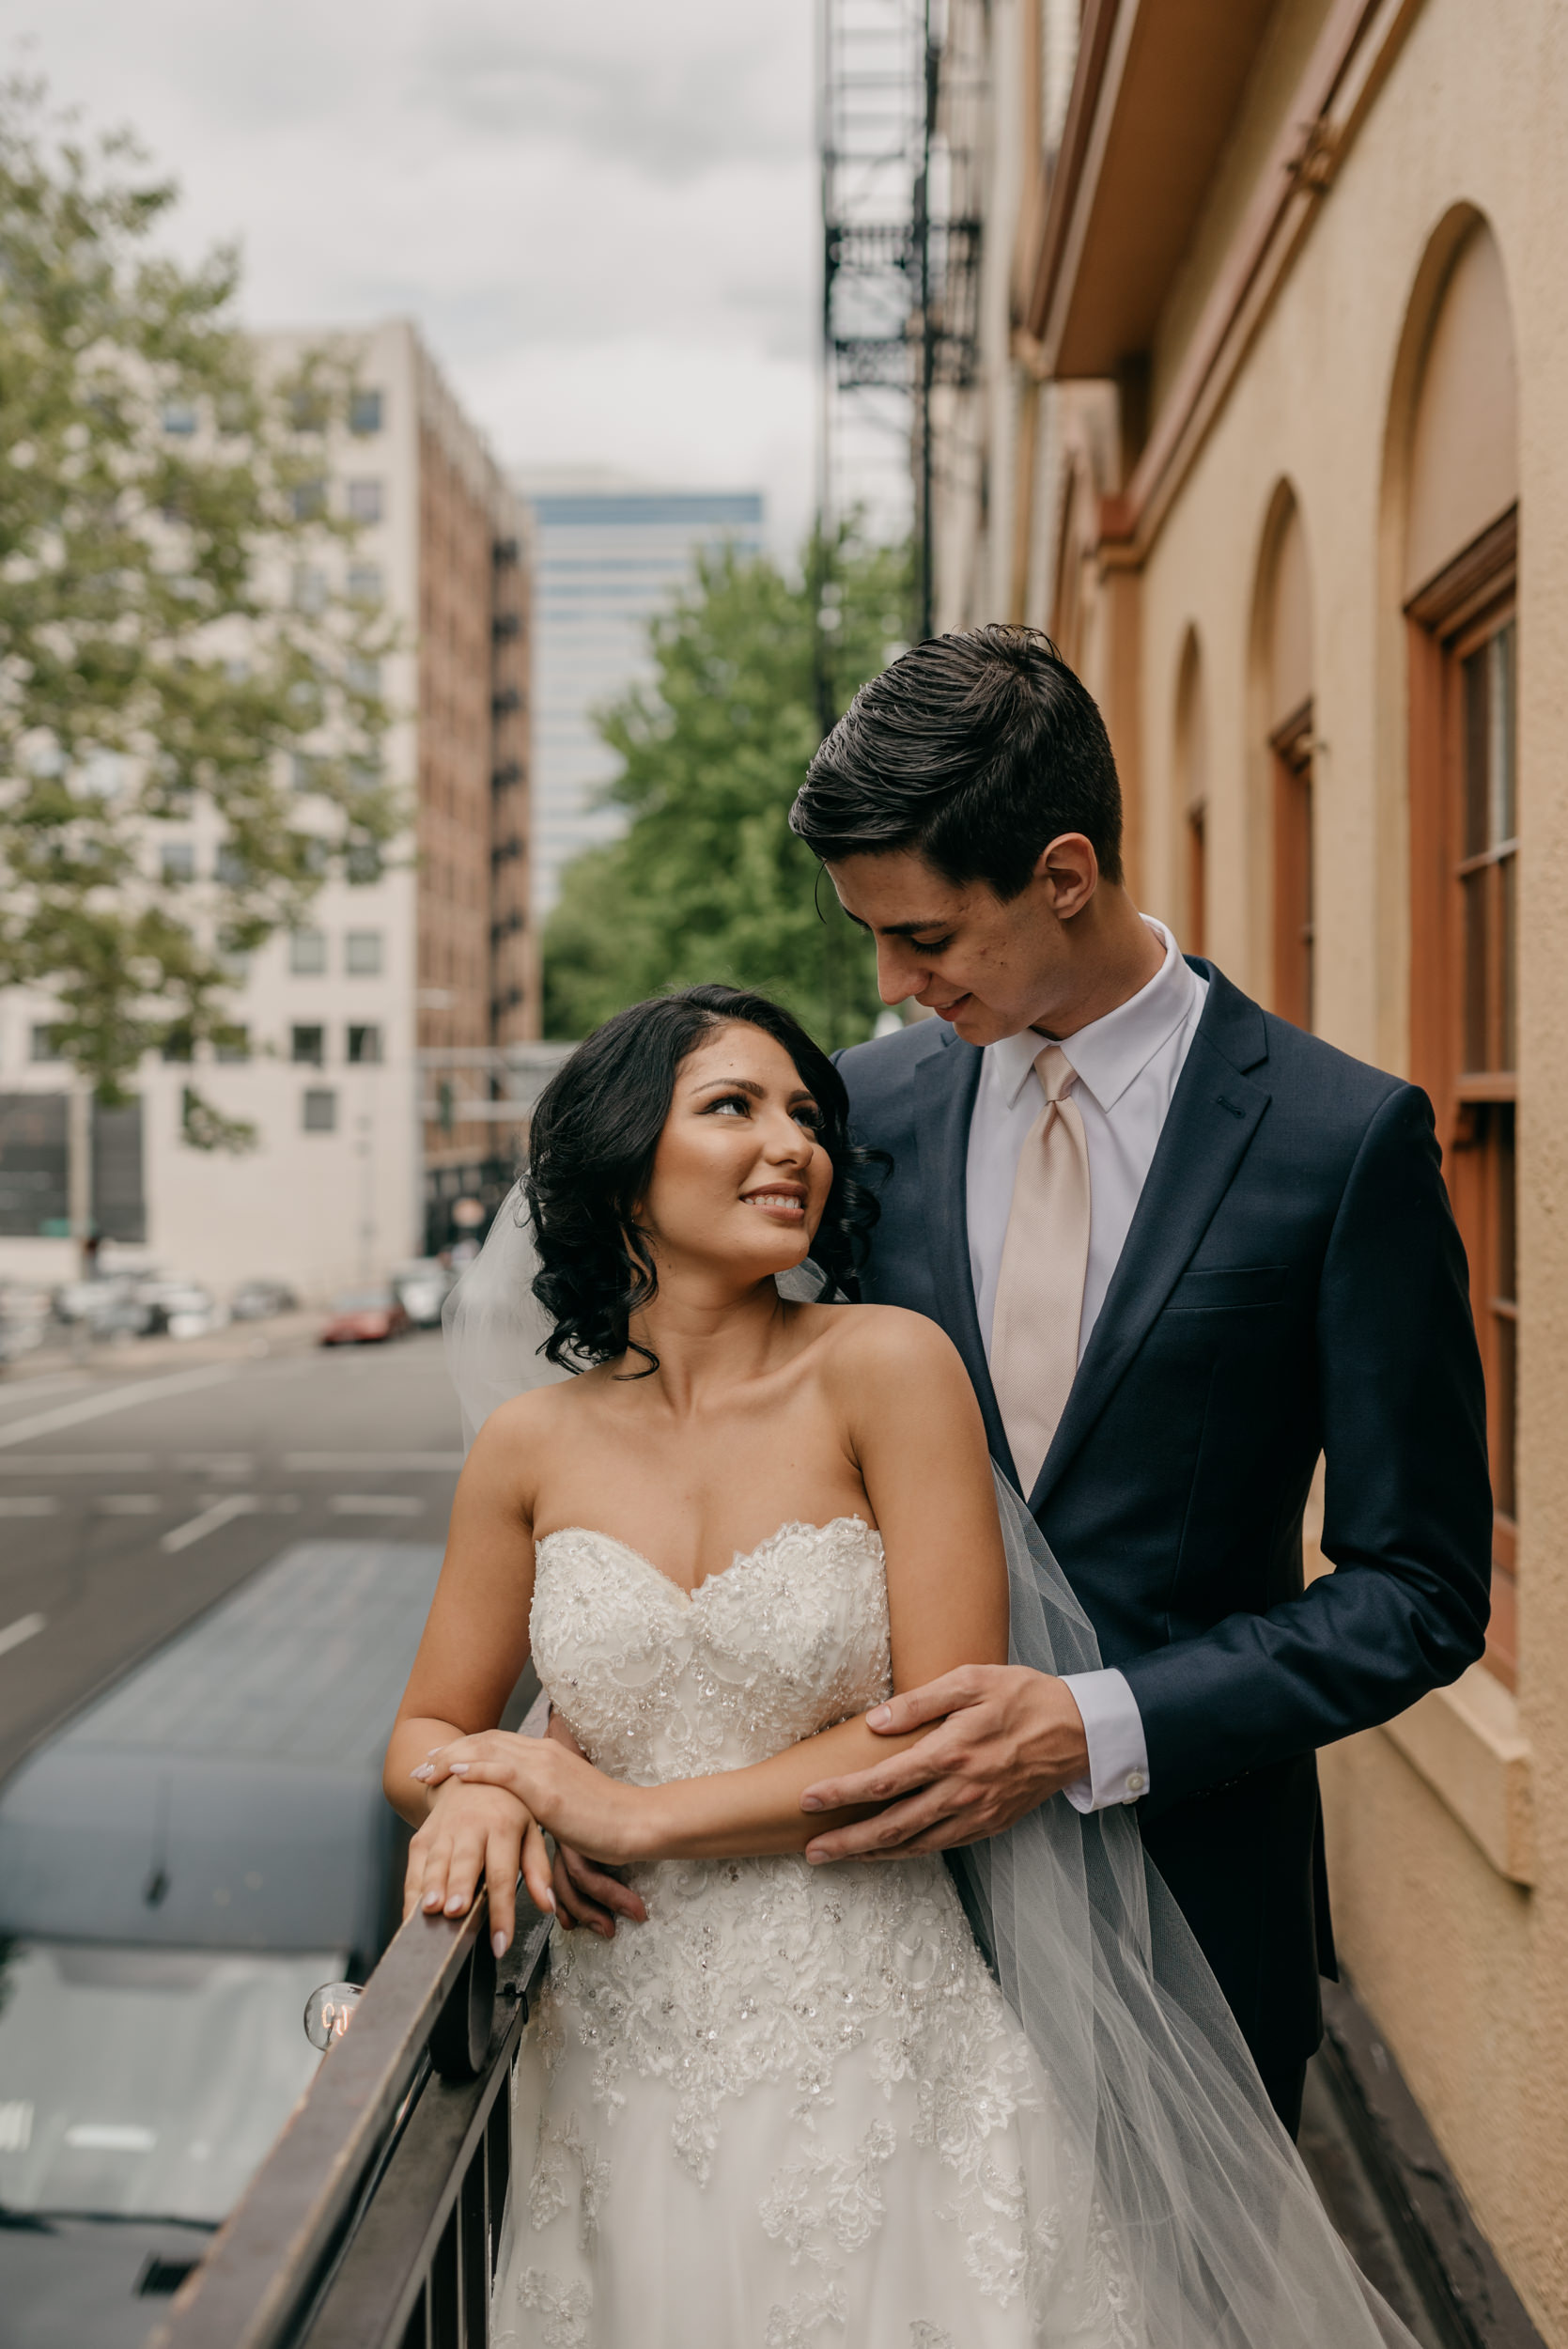 46-bridal-party-downtown-portland-first-look-7484.jpg